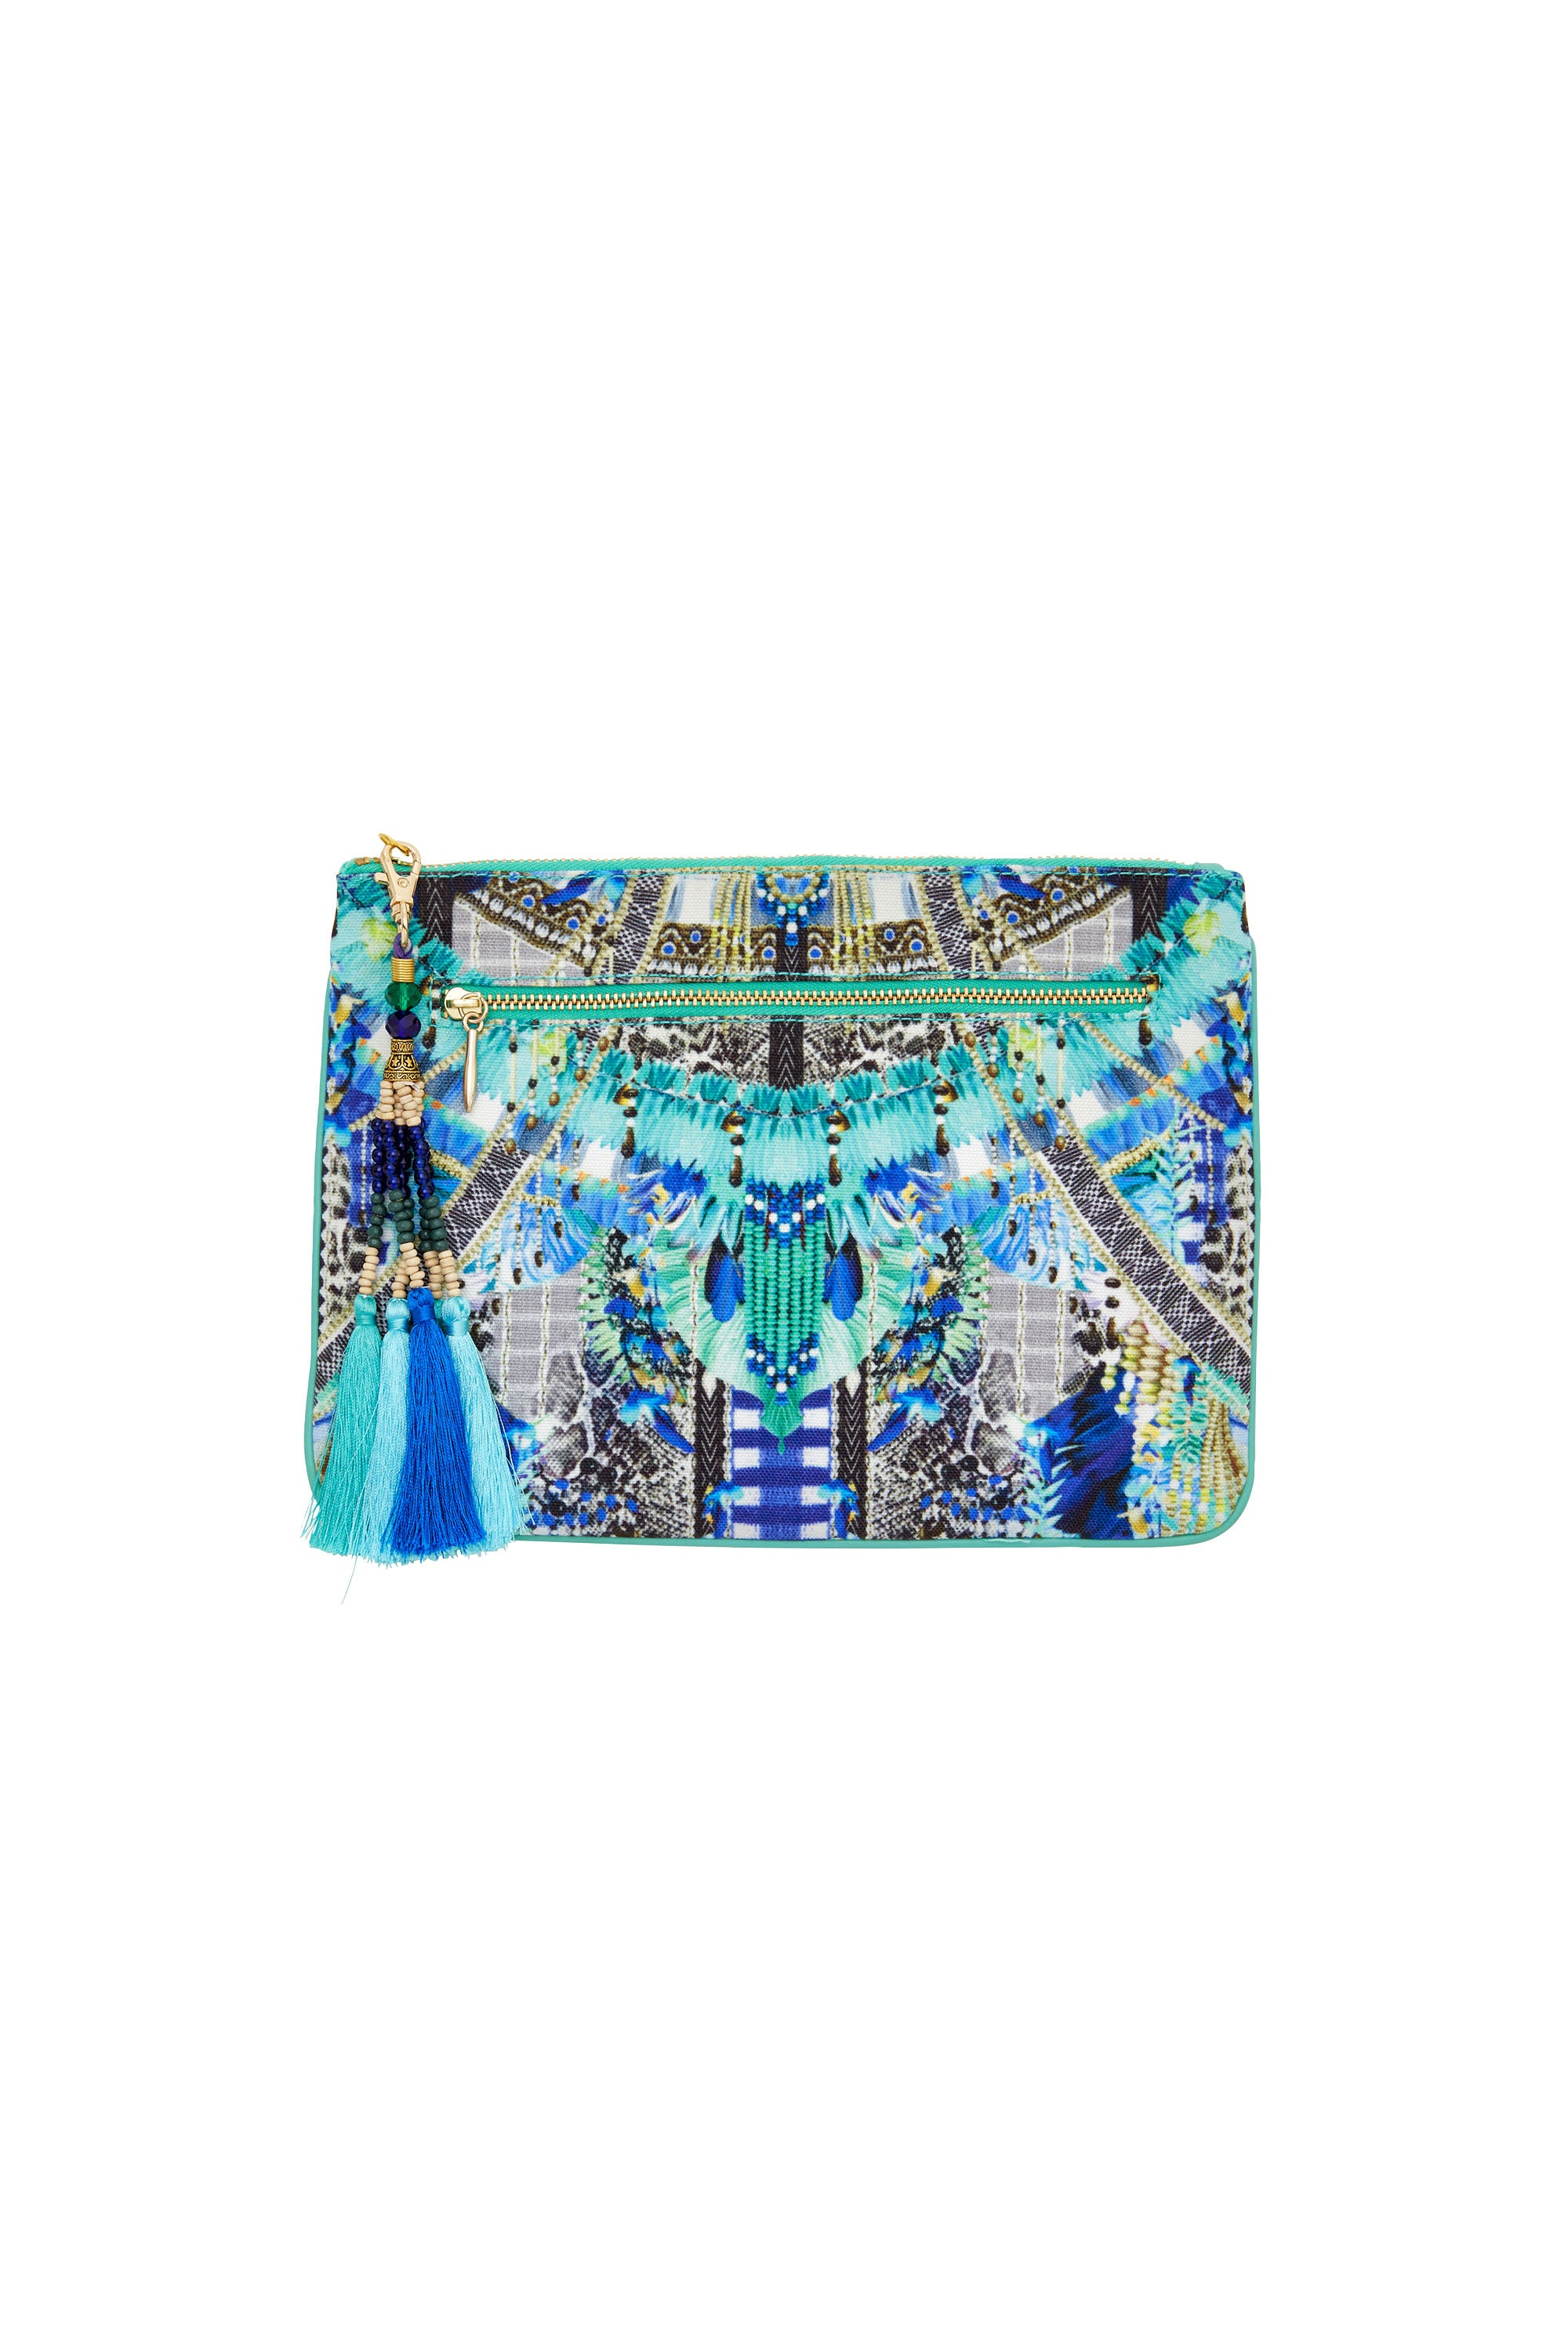 LEAVE ME WILD SMALL CANVAS CLUTCH